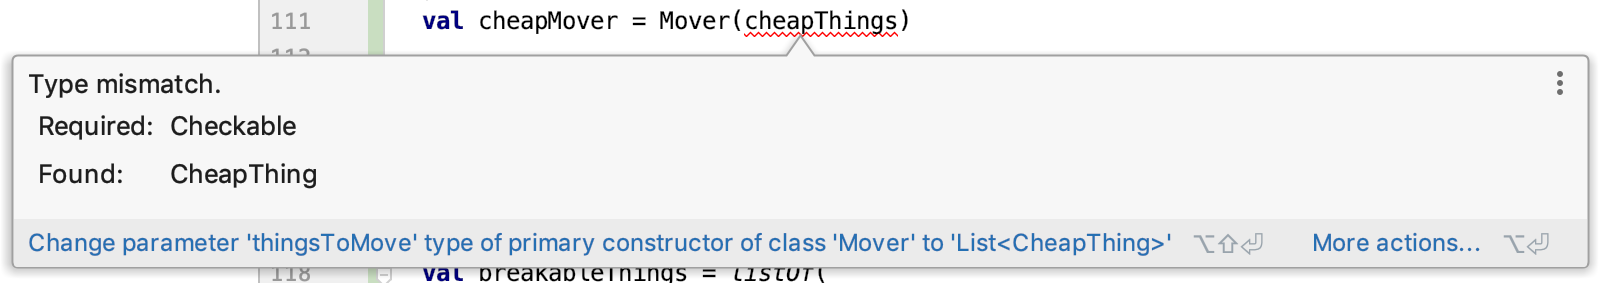 Type mismatch. Required: Checkable, Found: CheapThing